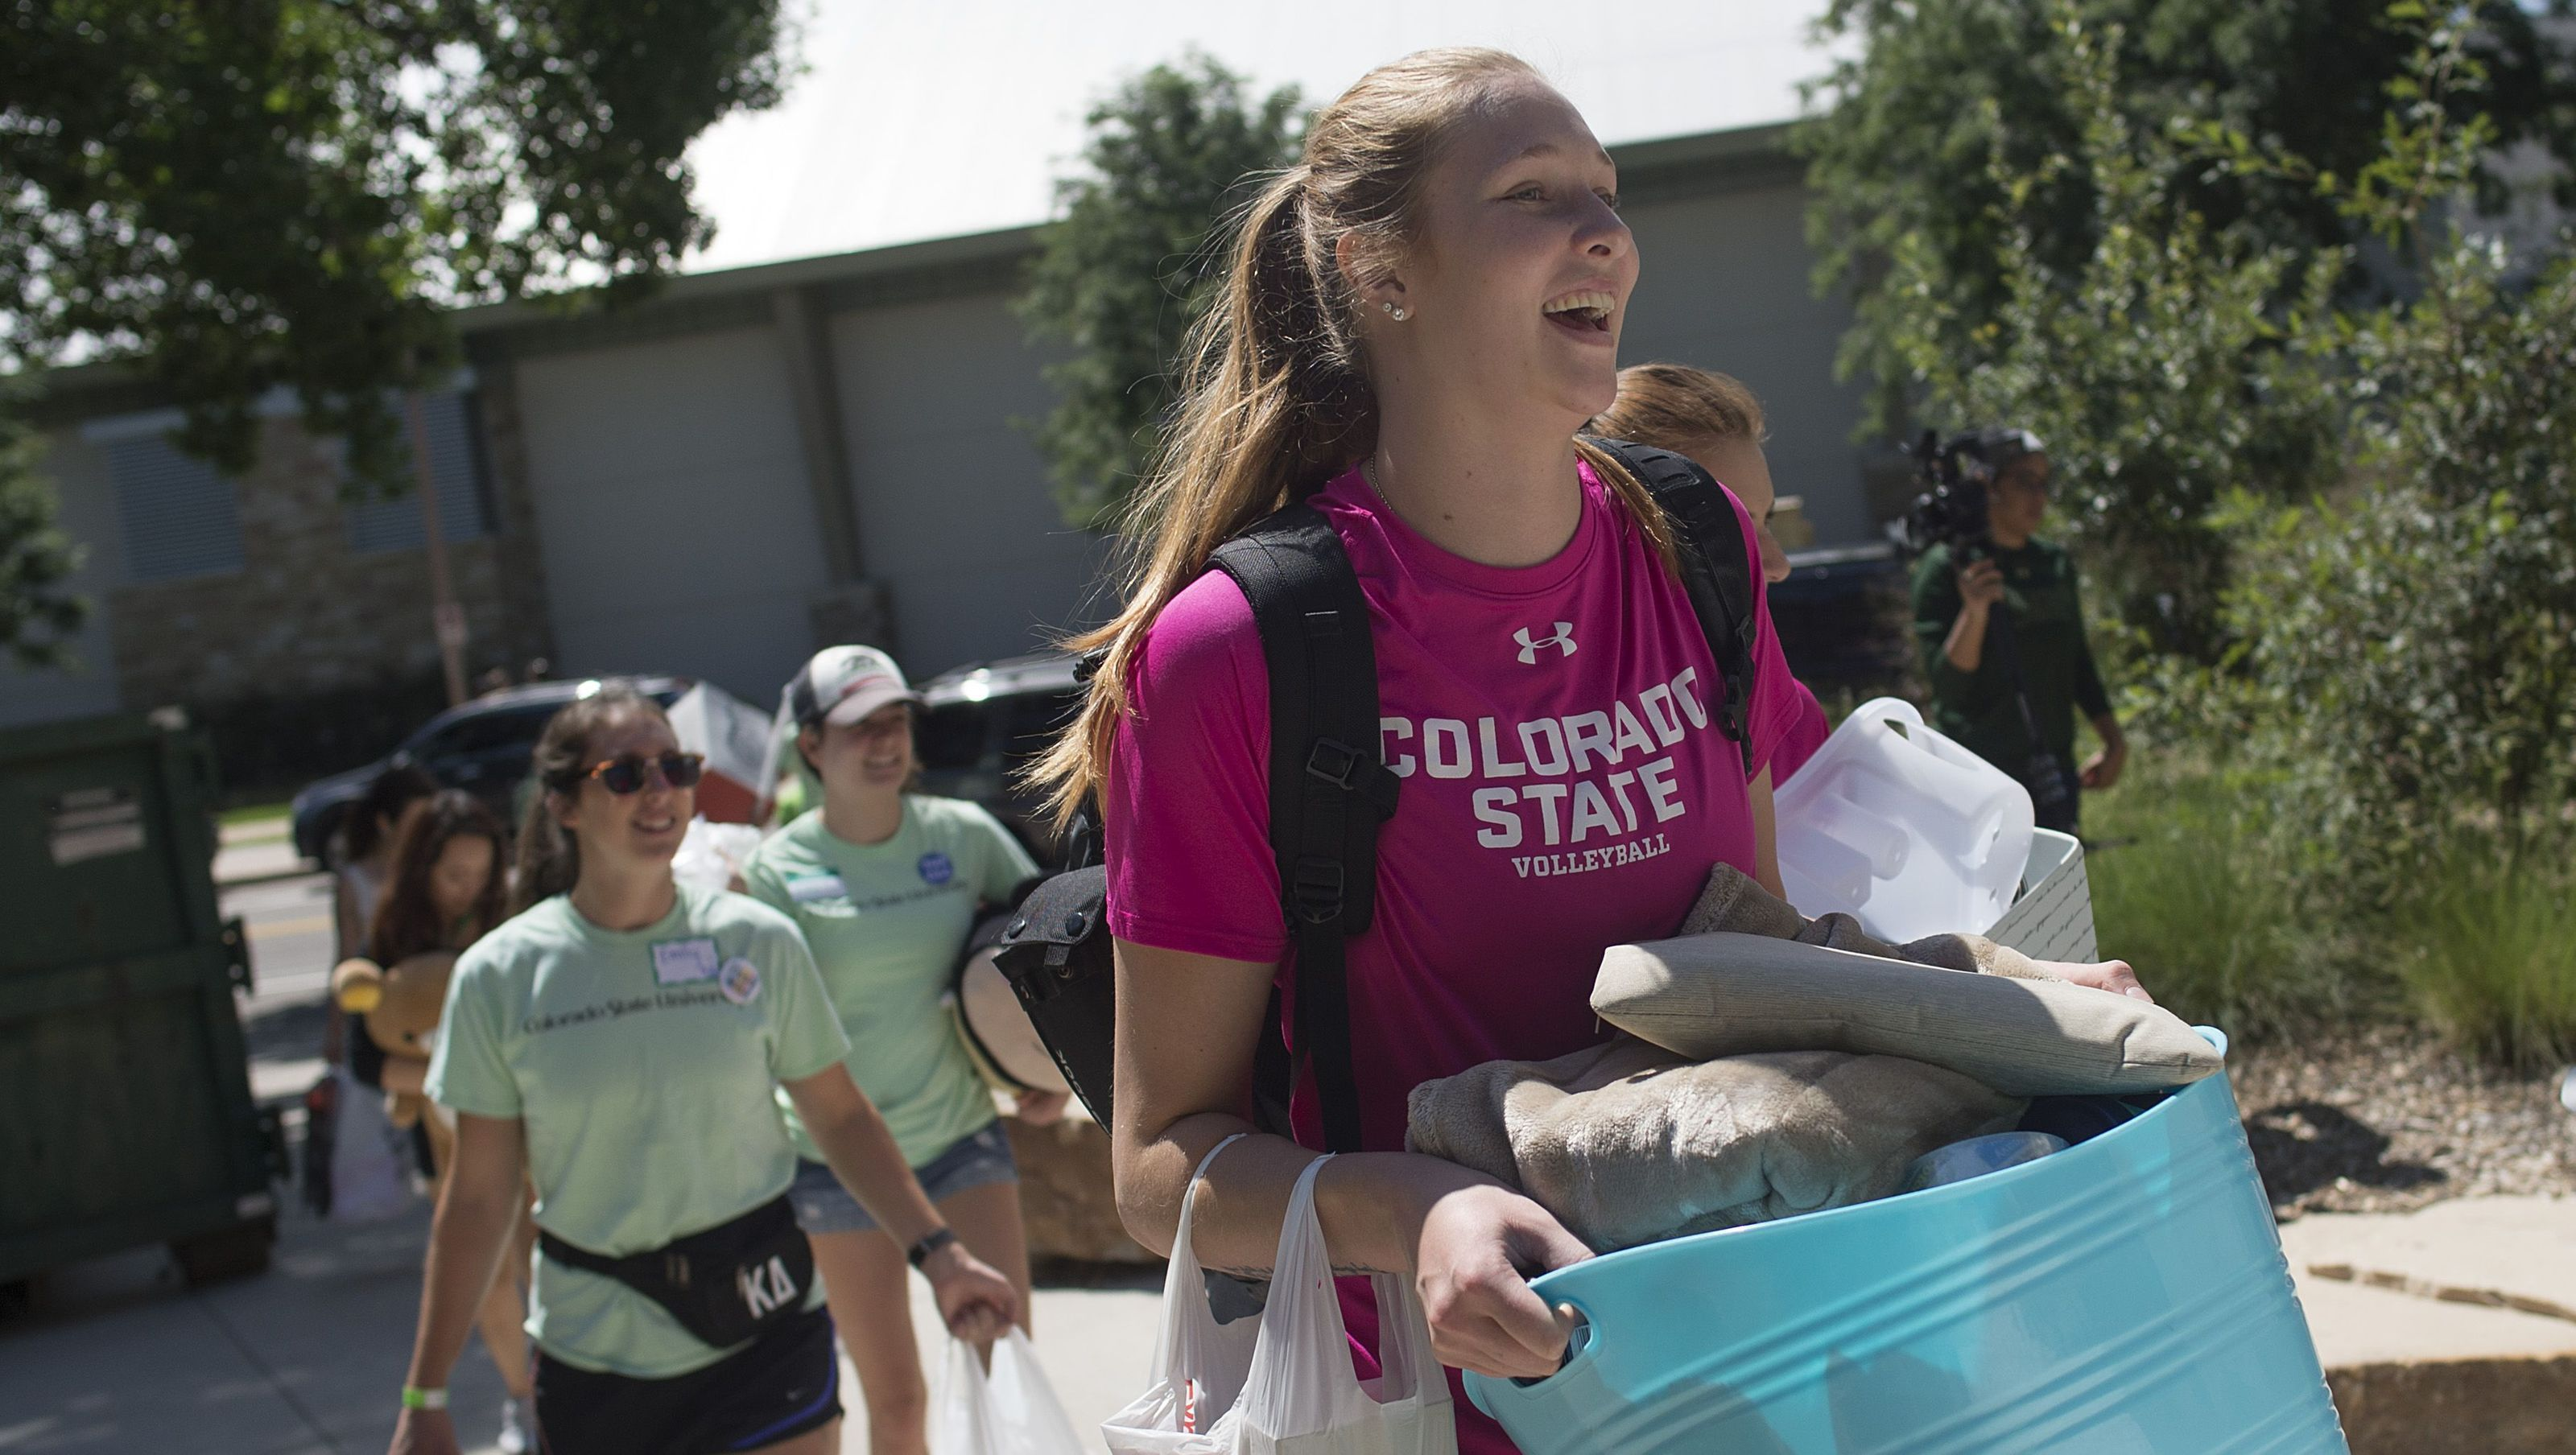 Csu Volleyball Team Grows Fan Base Through Community Outreach Volleyball Team Community Outreach Volleyball